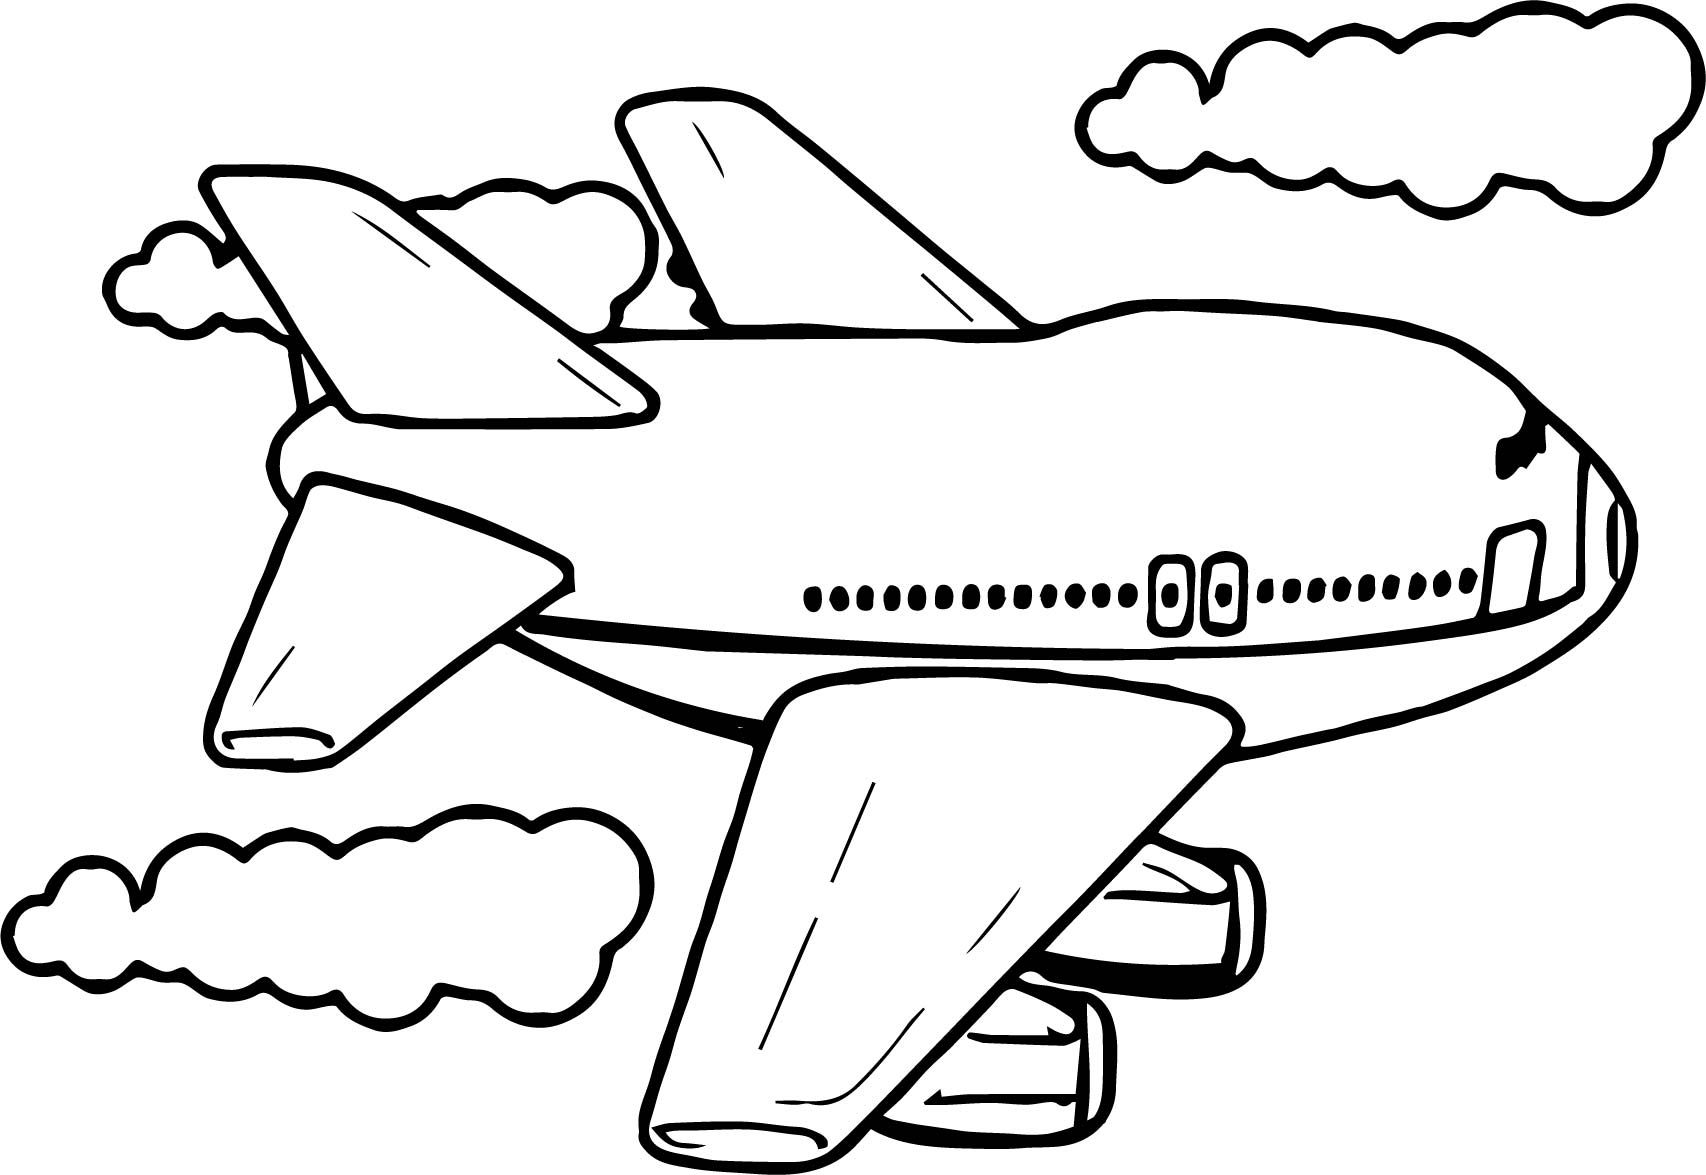 Awesome Cute Fly Airplane Coloring Page Airplane Coloring Pages Hello Kitty Colouring Pages Coloring Pages